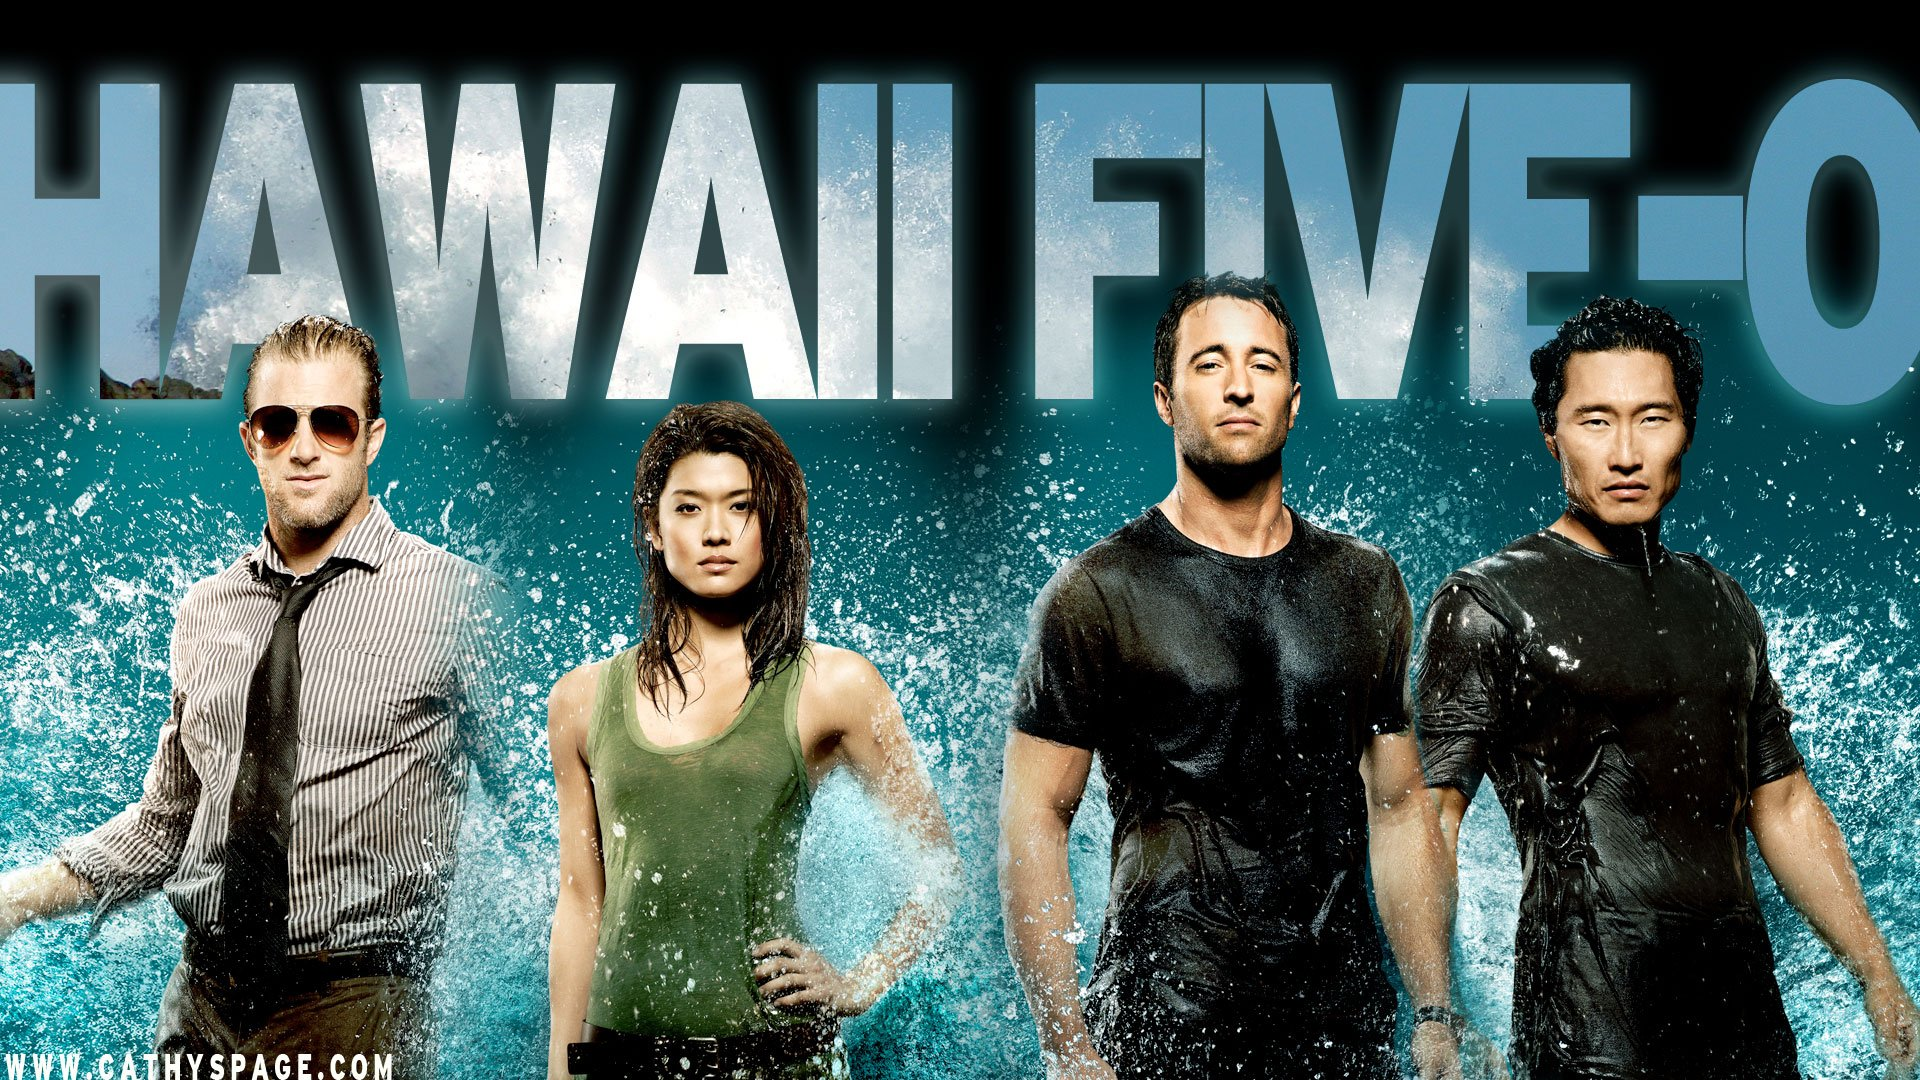 50 Hawaii Five O Wallpapers Backgrounds On Wallpapersafari